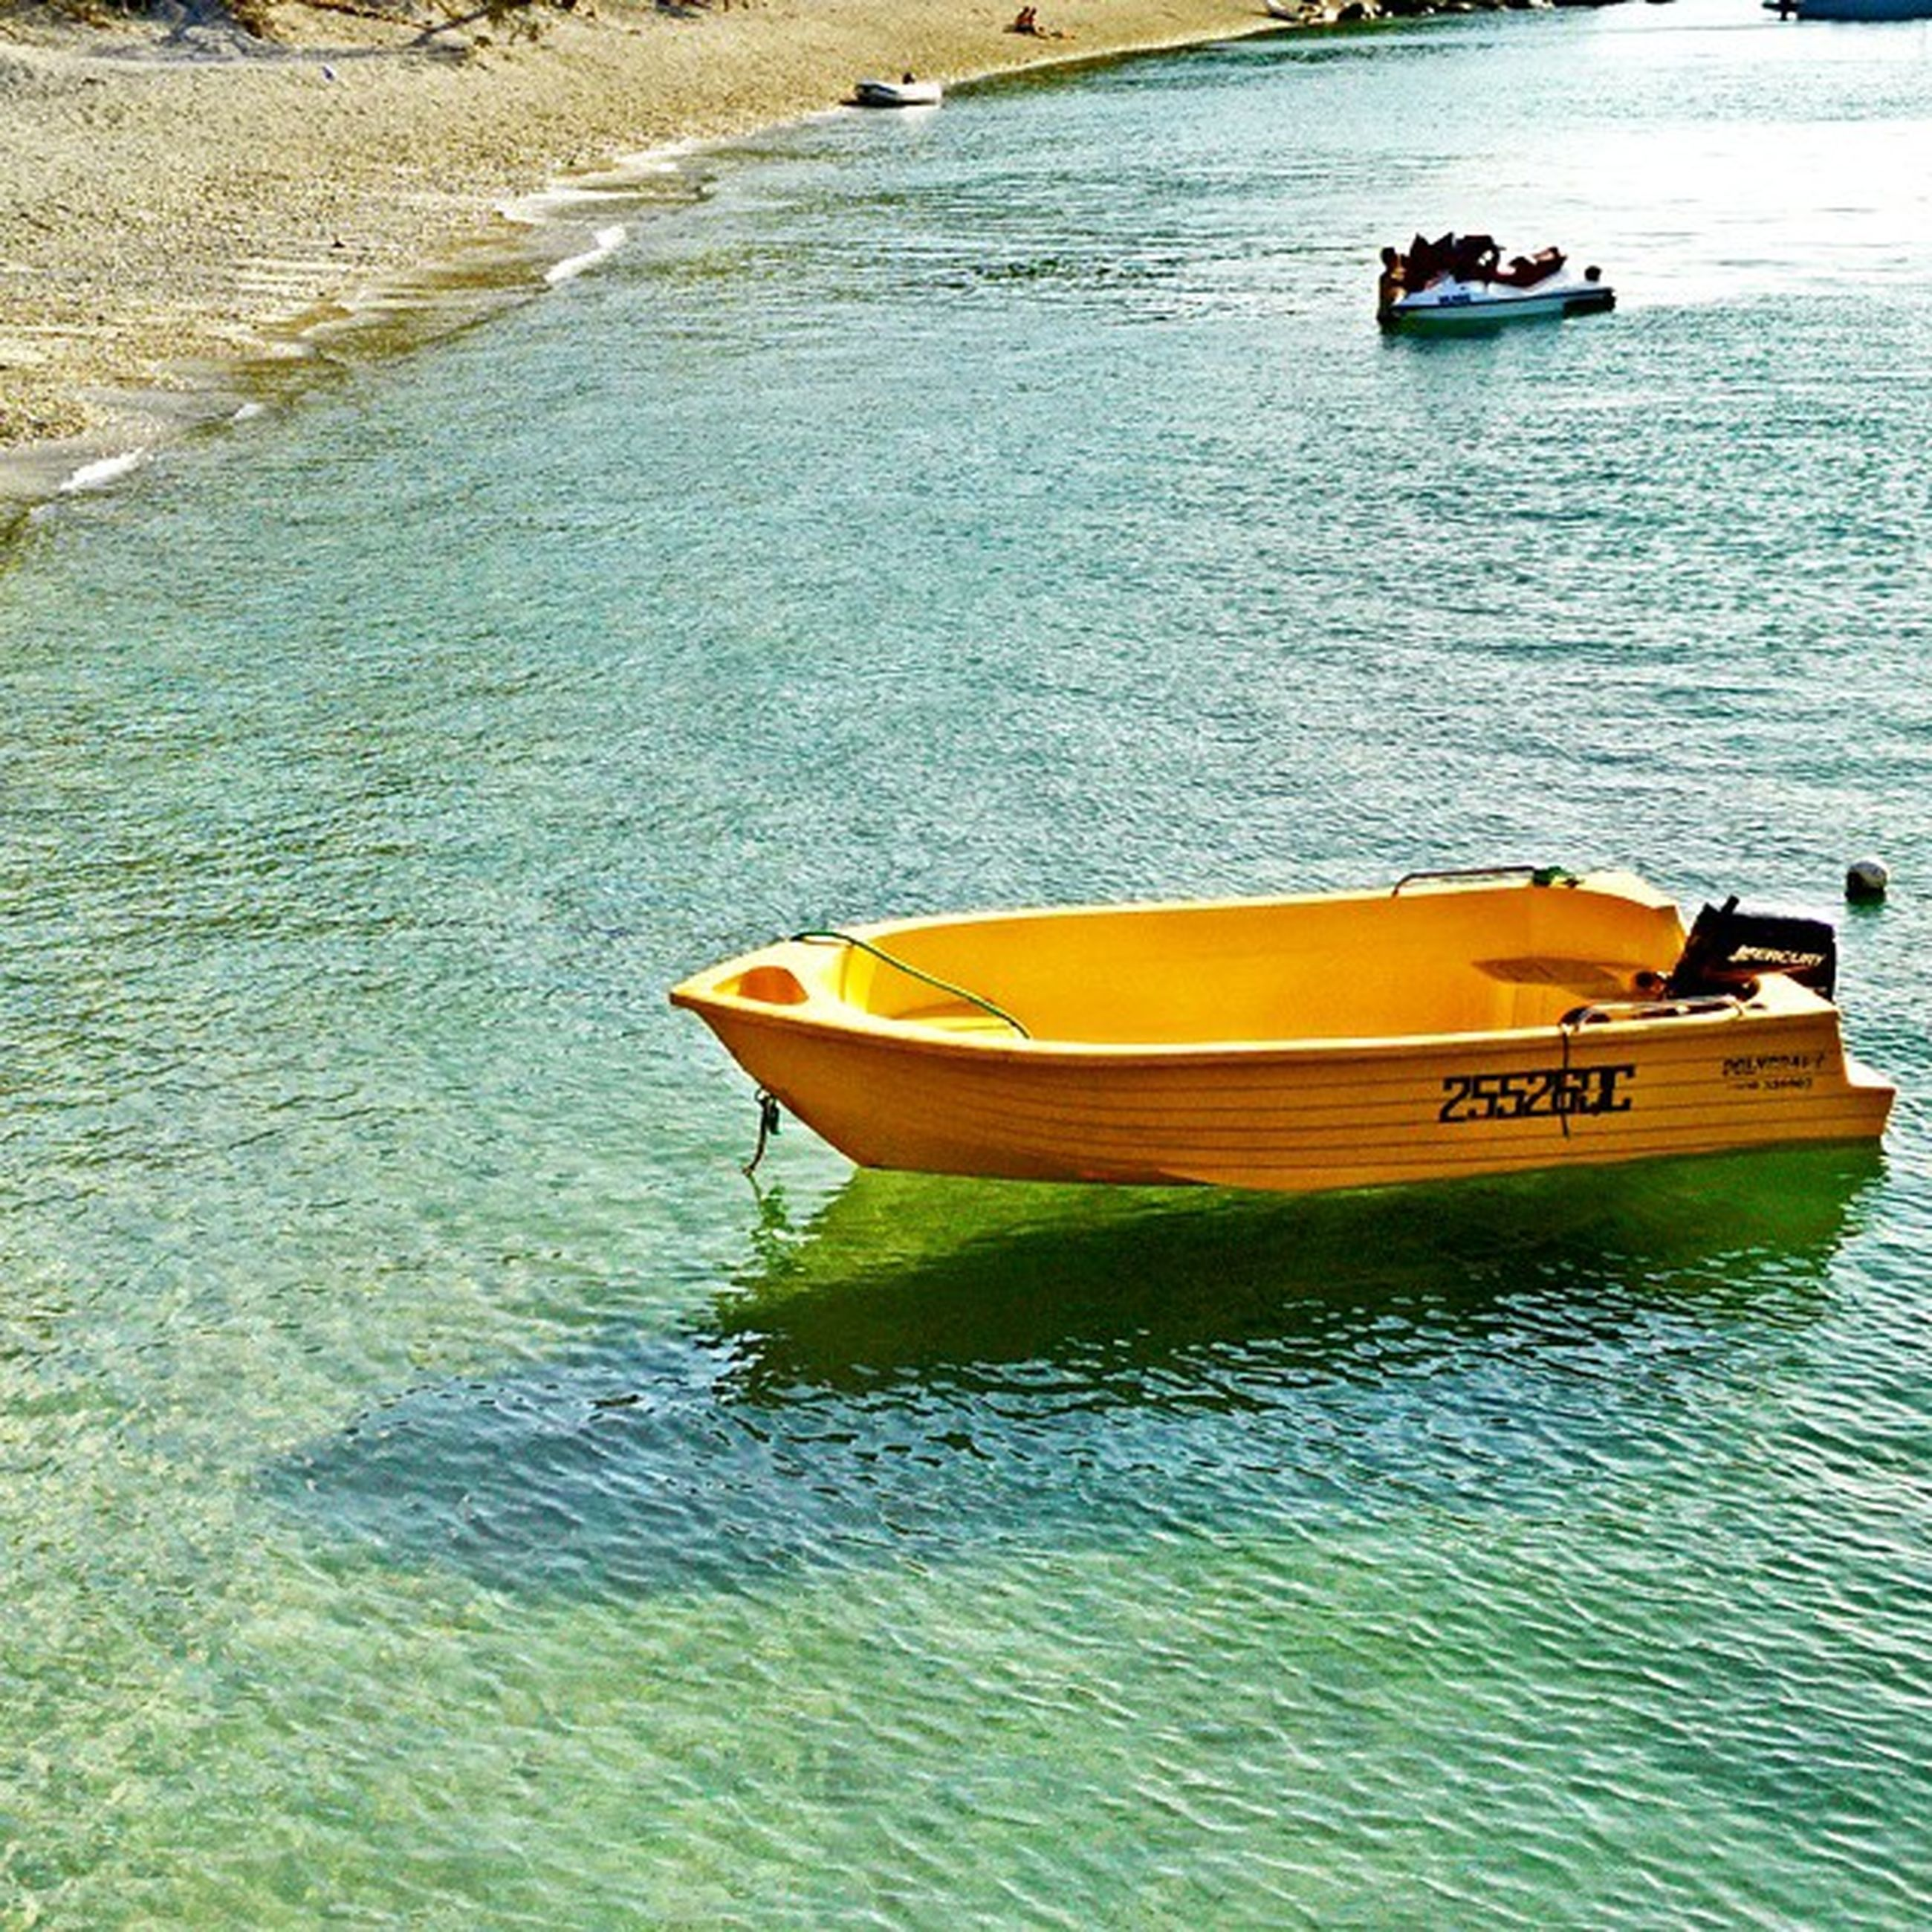 water, nautical vessel, transportation, boat, mode of transport, moored, sea, rippled, waterfront, high angle view, travel, tranquility, nature, tranquil scene, beauty in nature, day, rowboat, oar, outdoors, sailing